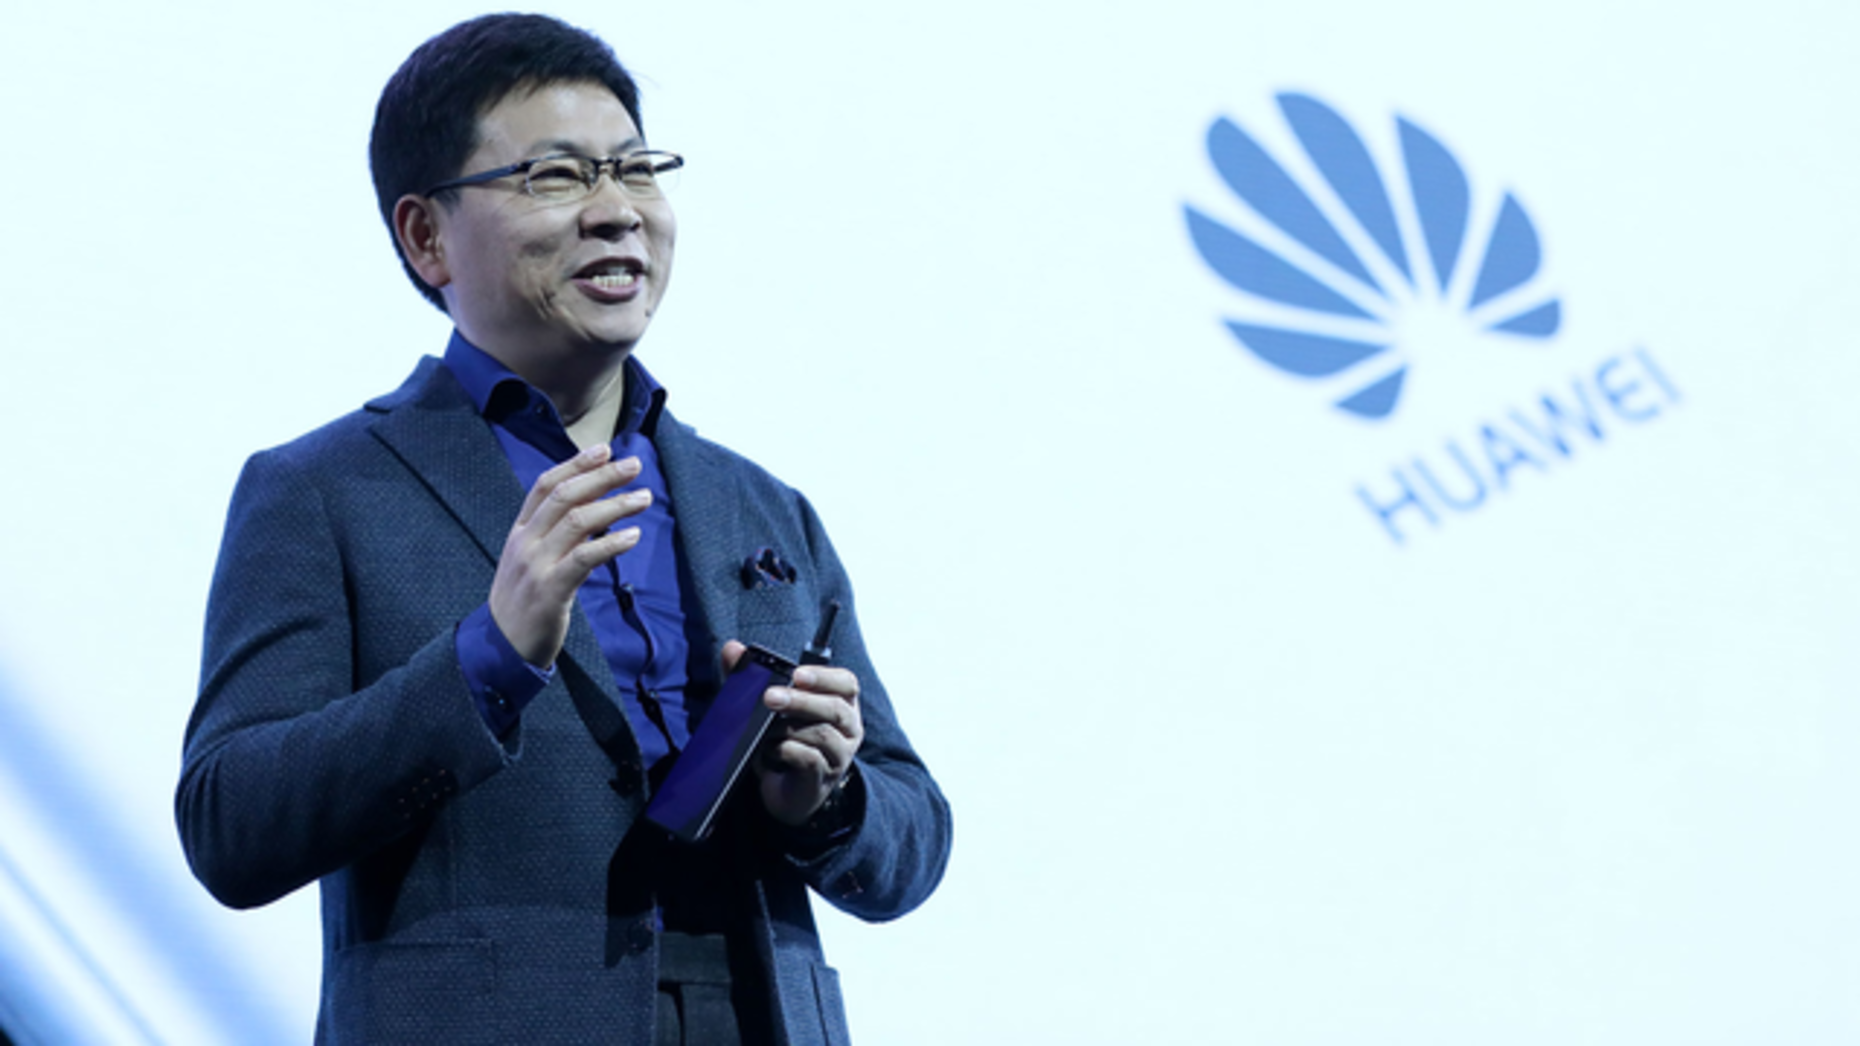 Huawei executive Richard Yu. Photo: Bloomberg